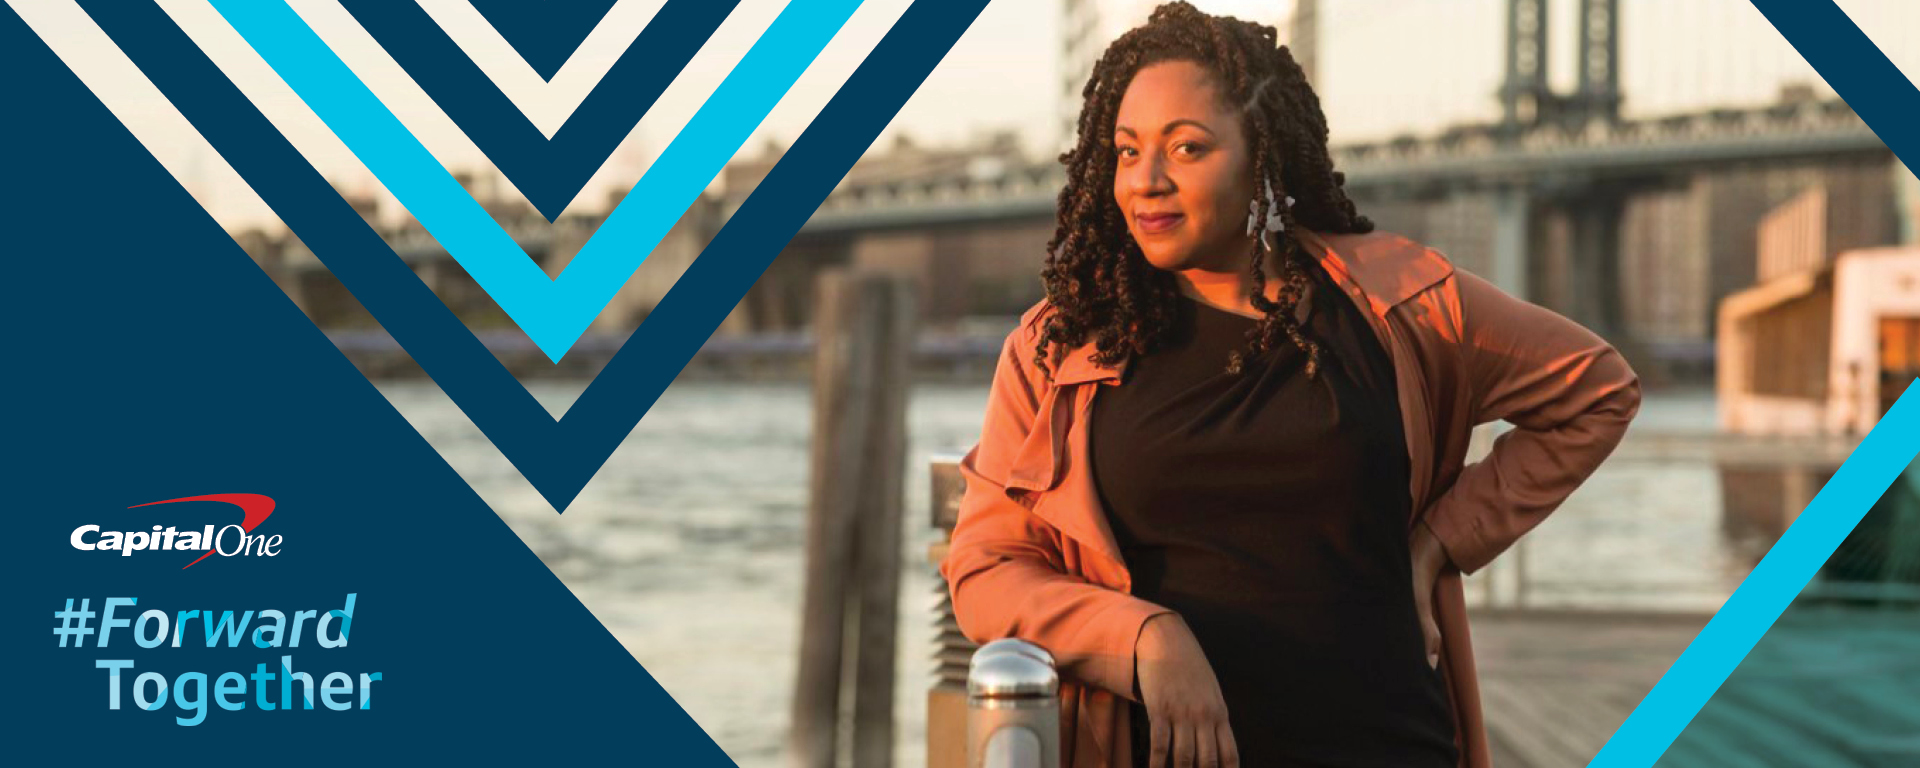 Cat Posey, a leader in Machine Learning and AI at Capital One, talks about her passion for opportunity for women in Tech